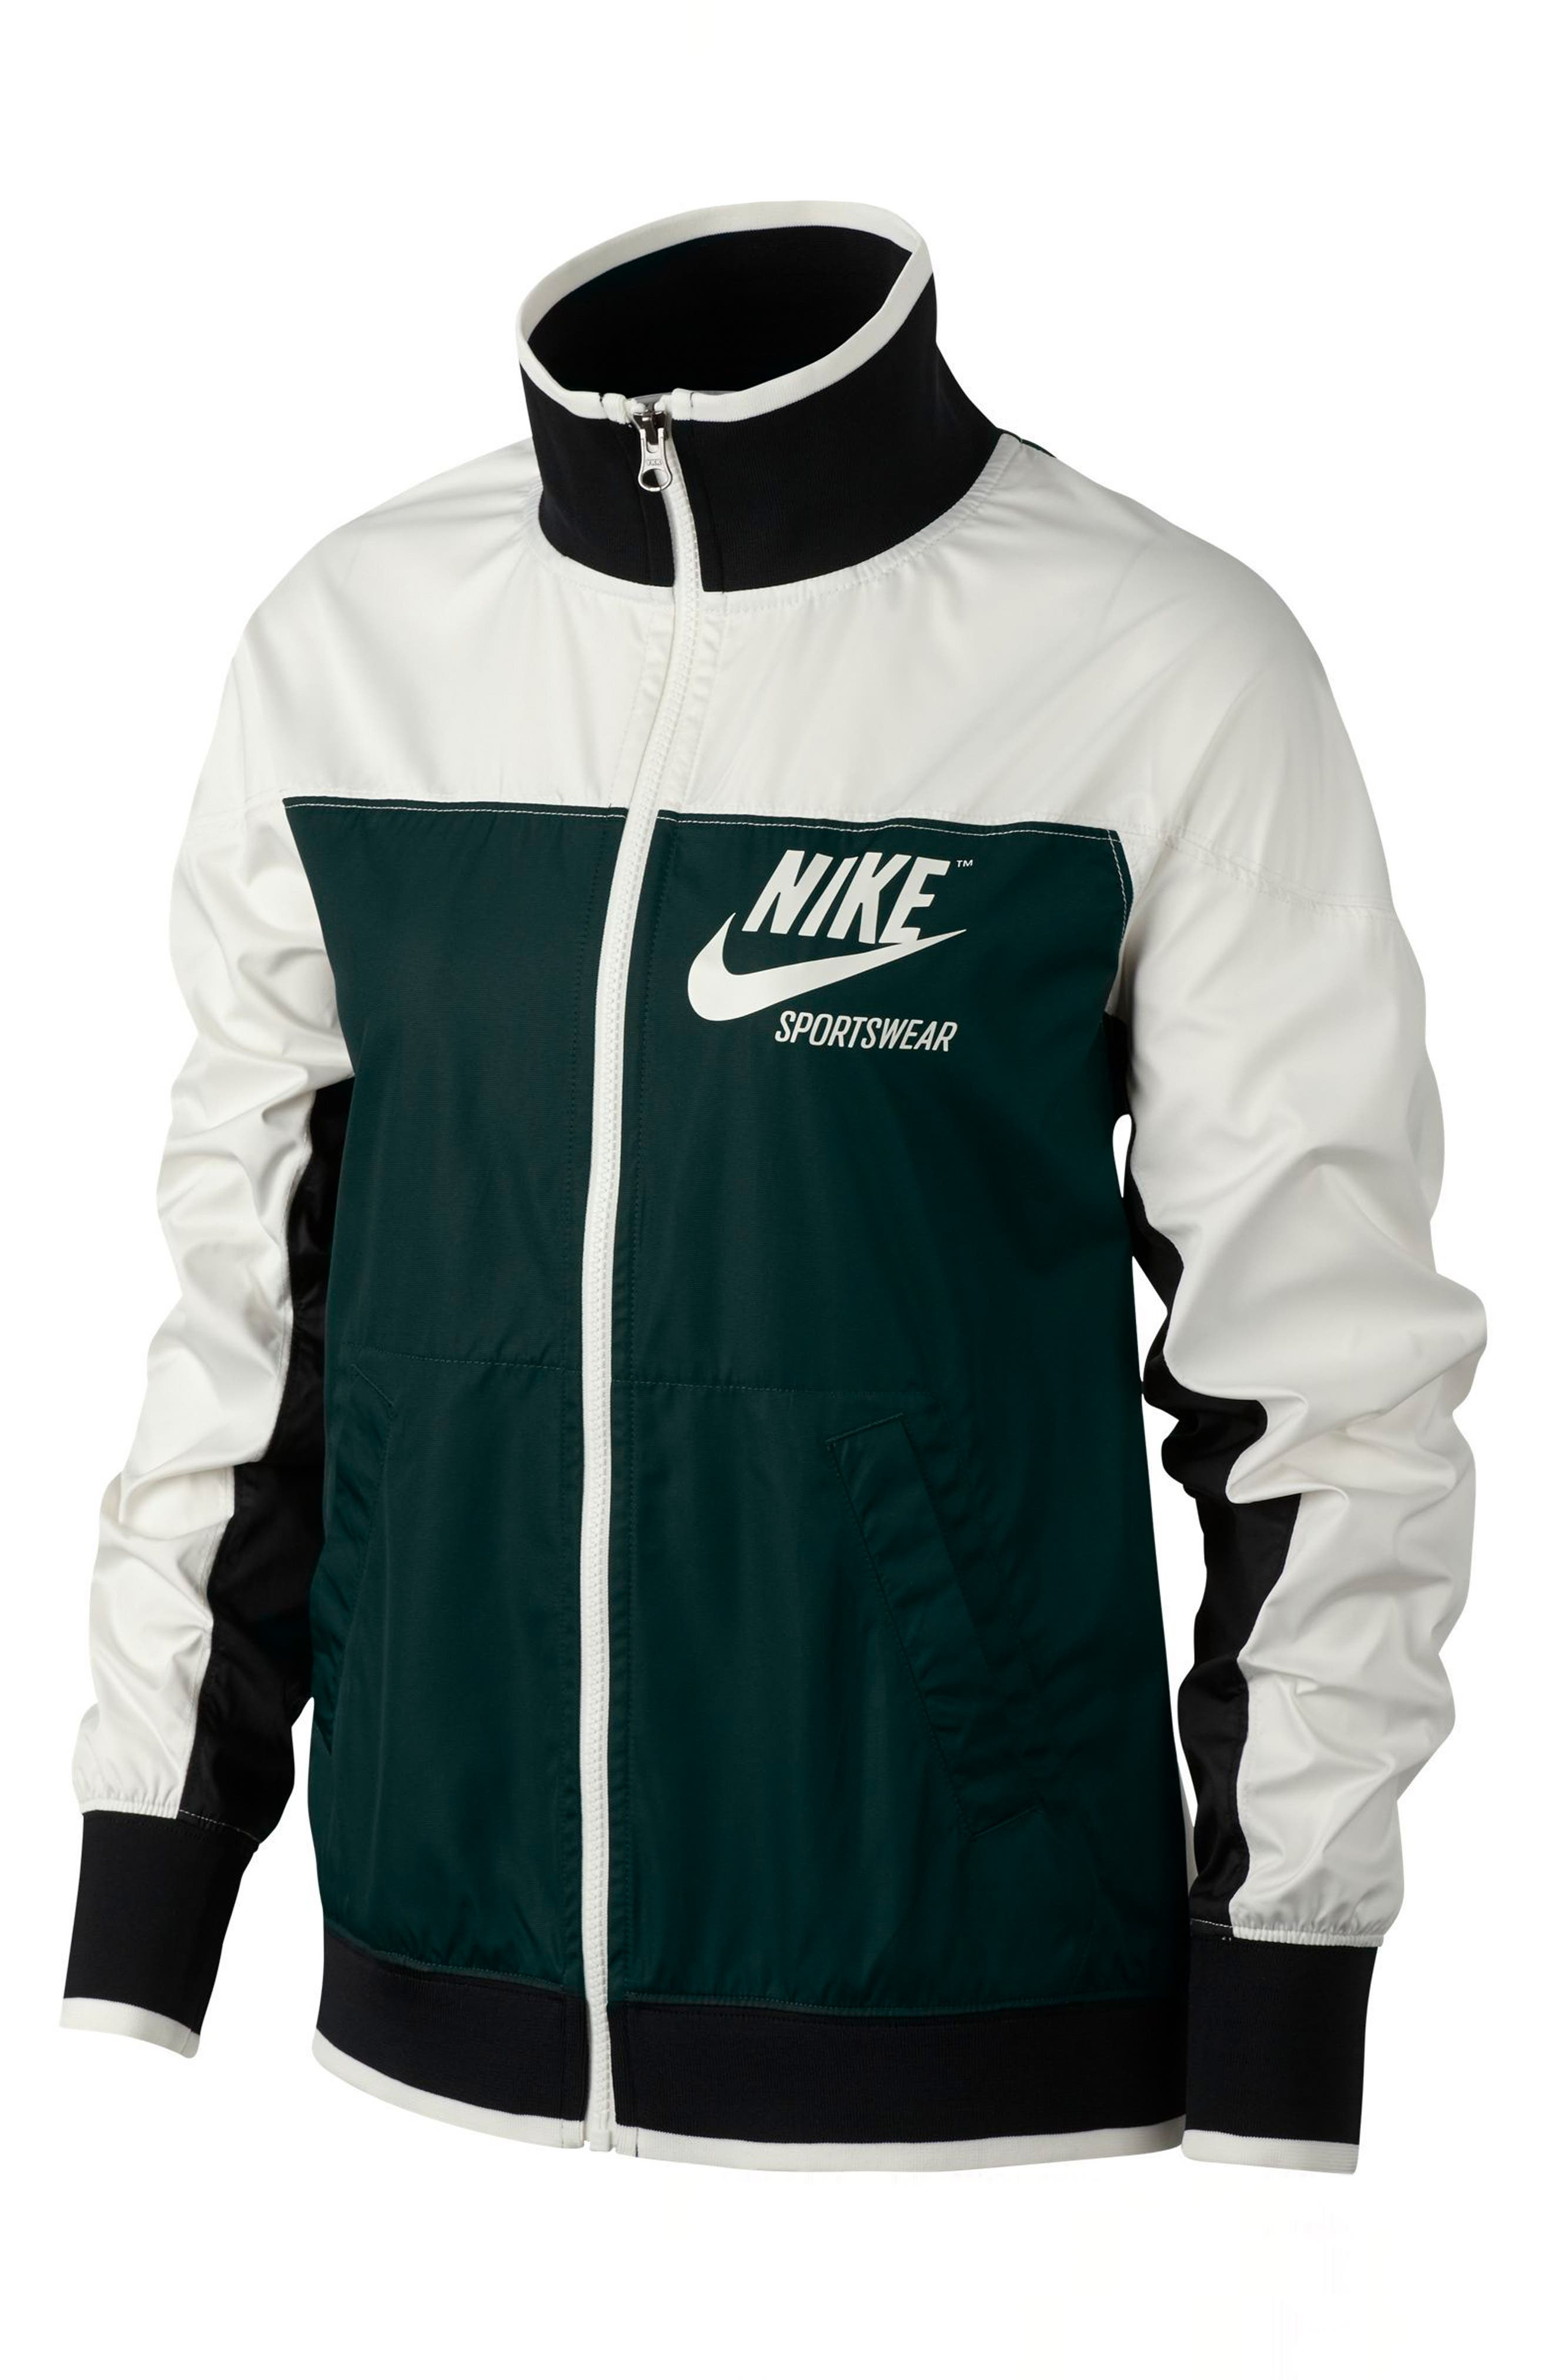 Nike Sportswear Women's Full Zip Jacket